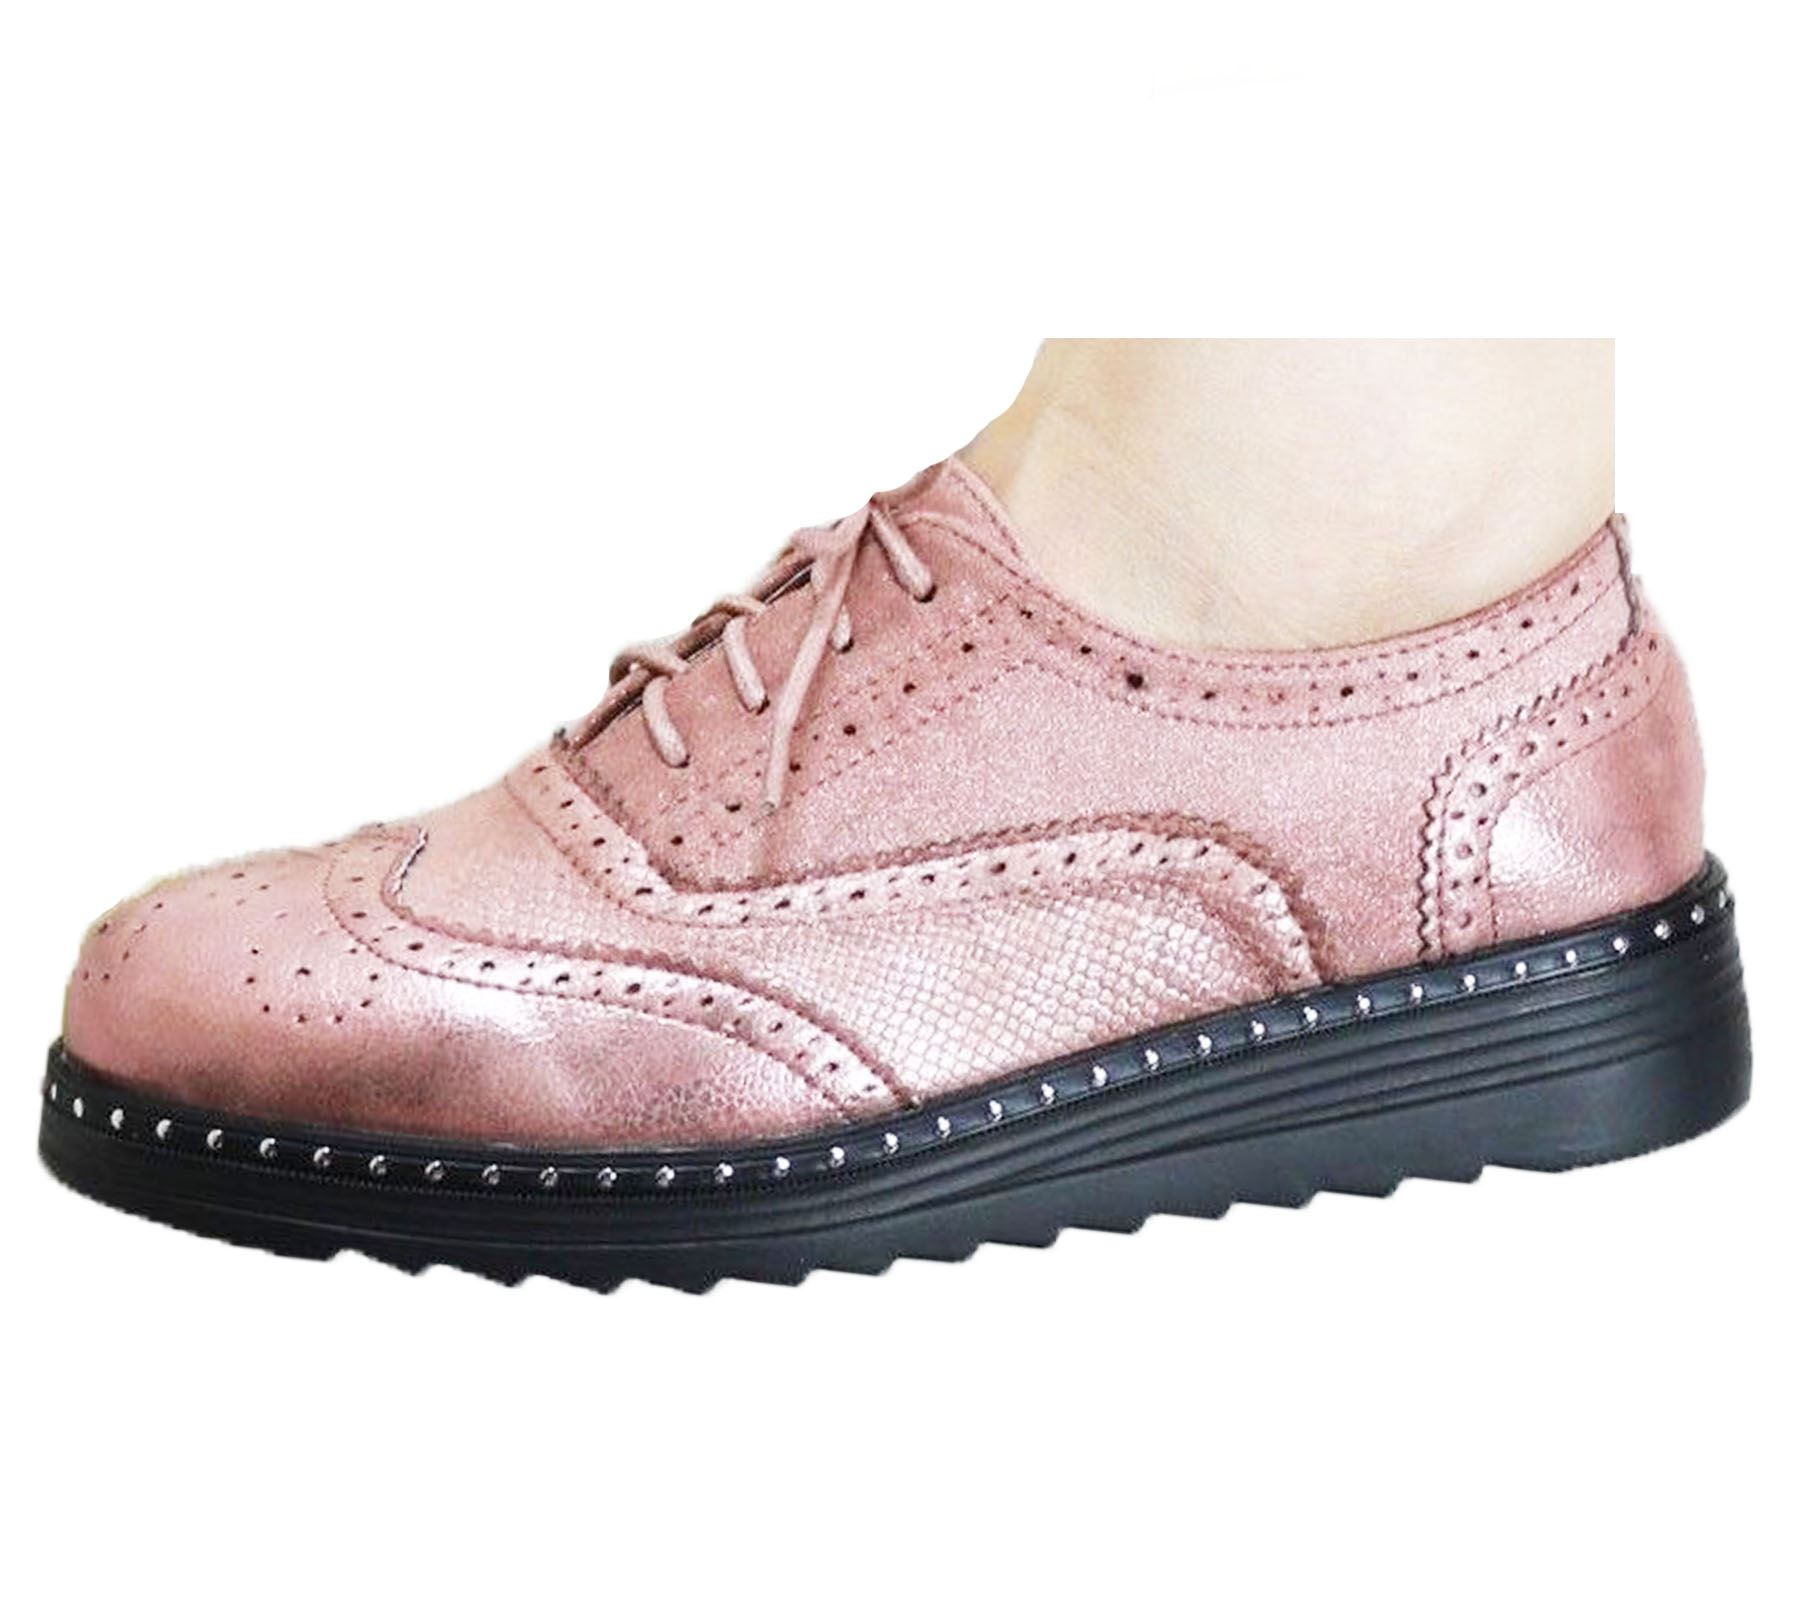 Ladies-Brogue-Lace-Up-Shoes-Womens-Oxford-Smart-Office-Loafers-Shoes miniatura 29